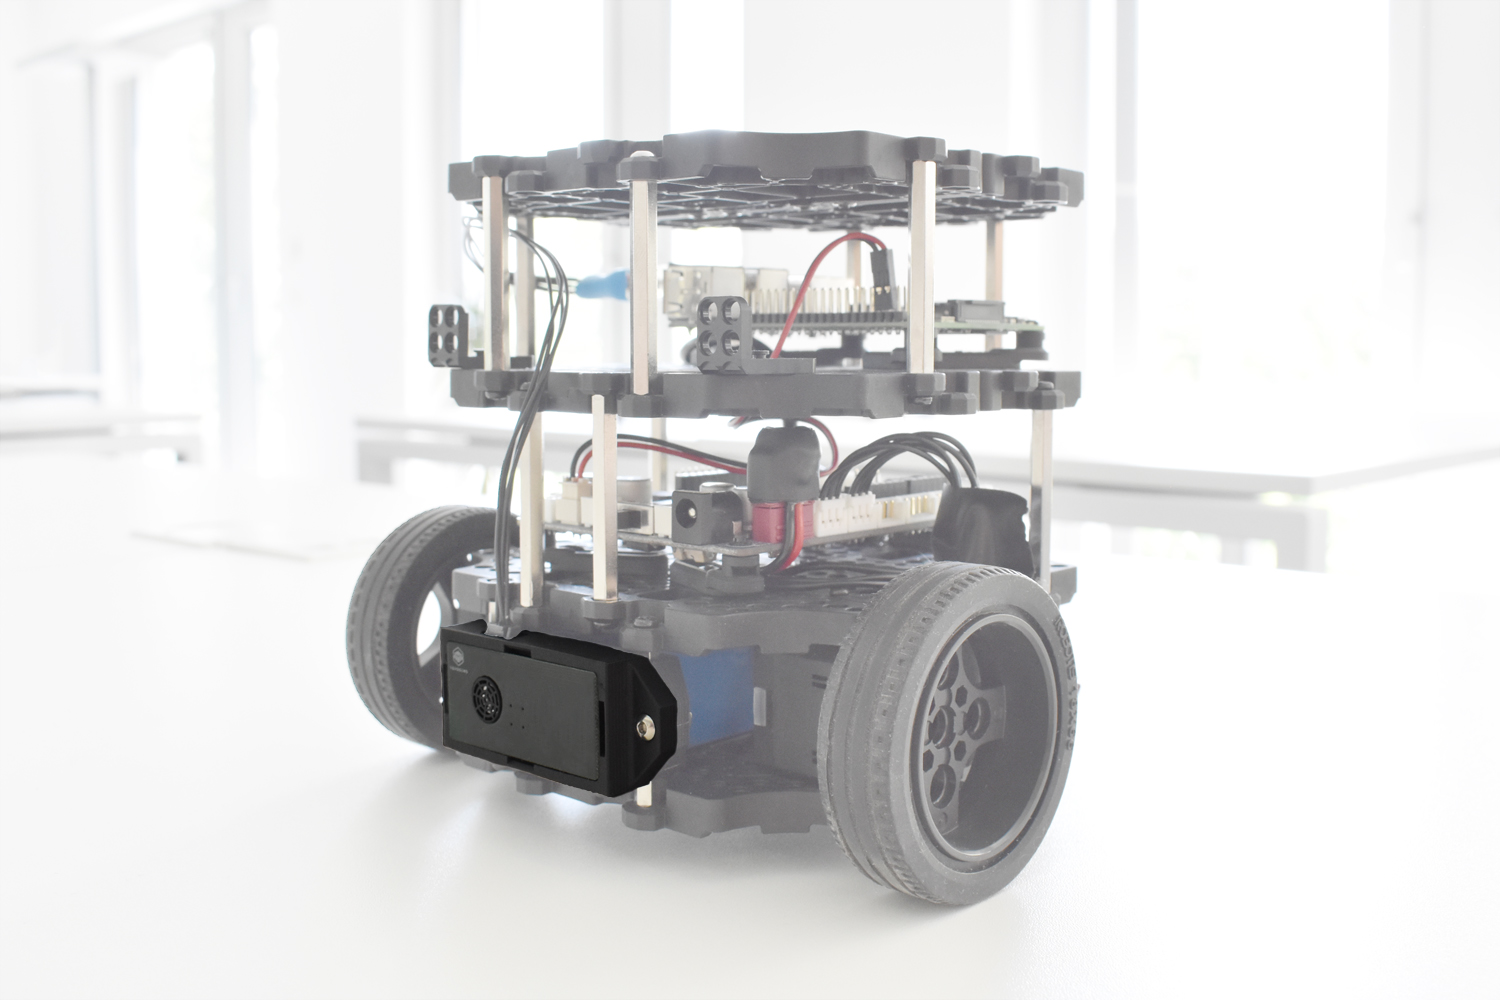 turtlebot-ultrasonic-3d-ultrasound